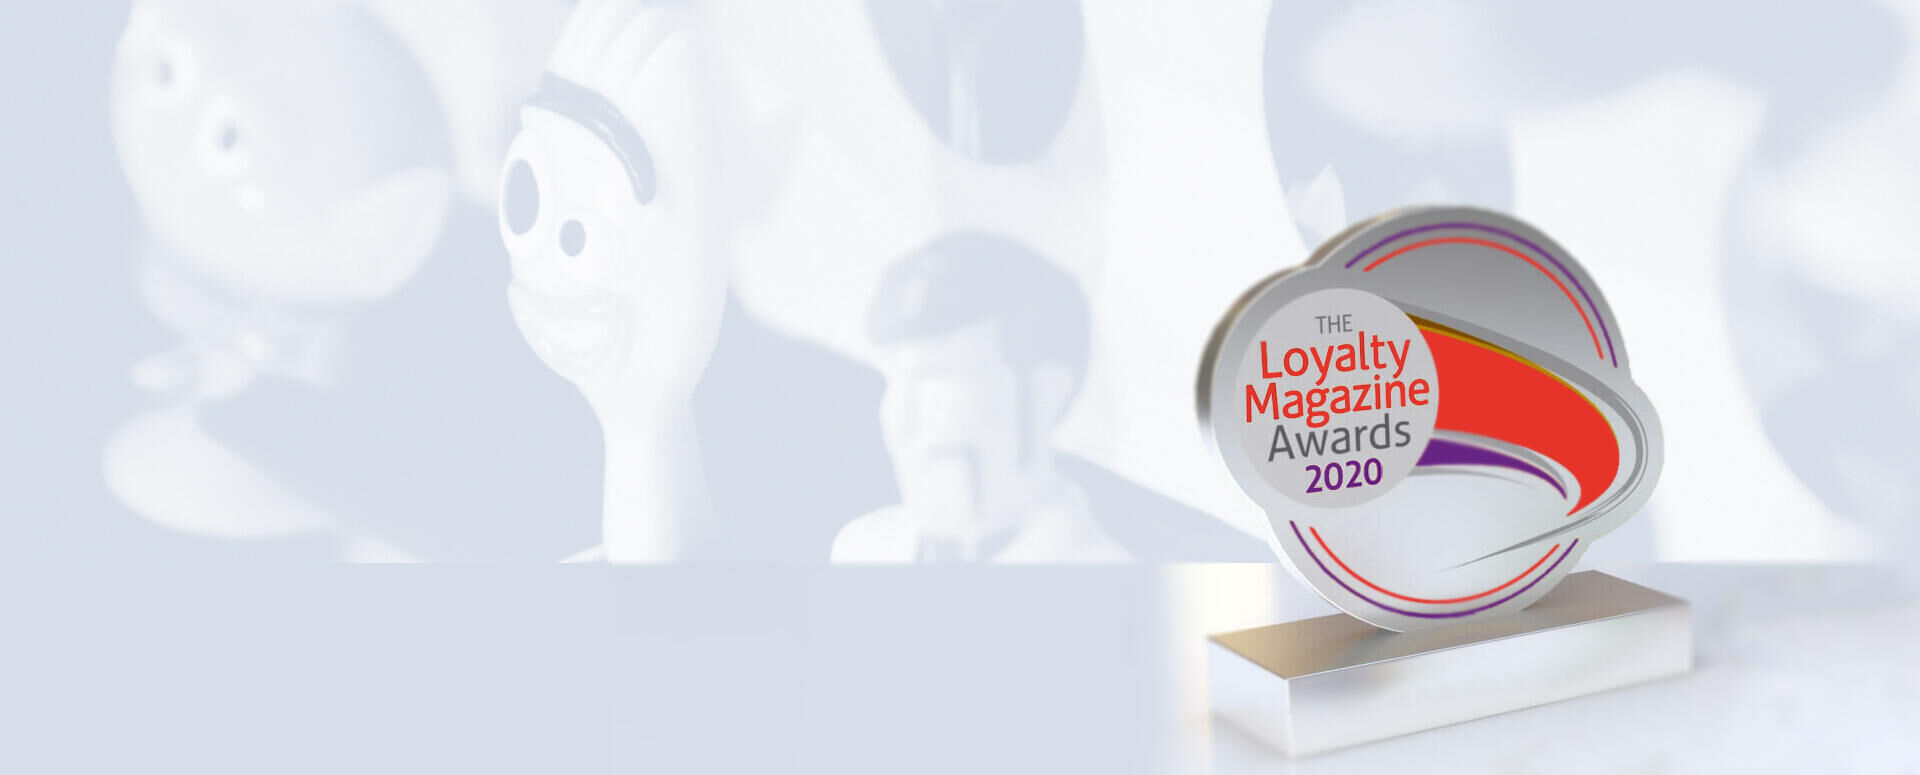 May the best win the Loyalty Magazine Awards